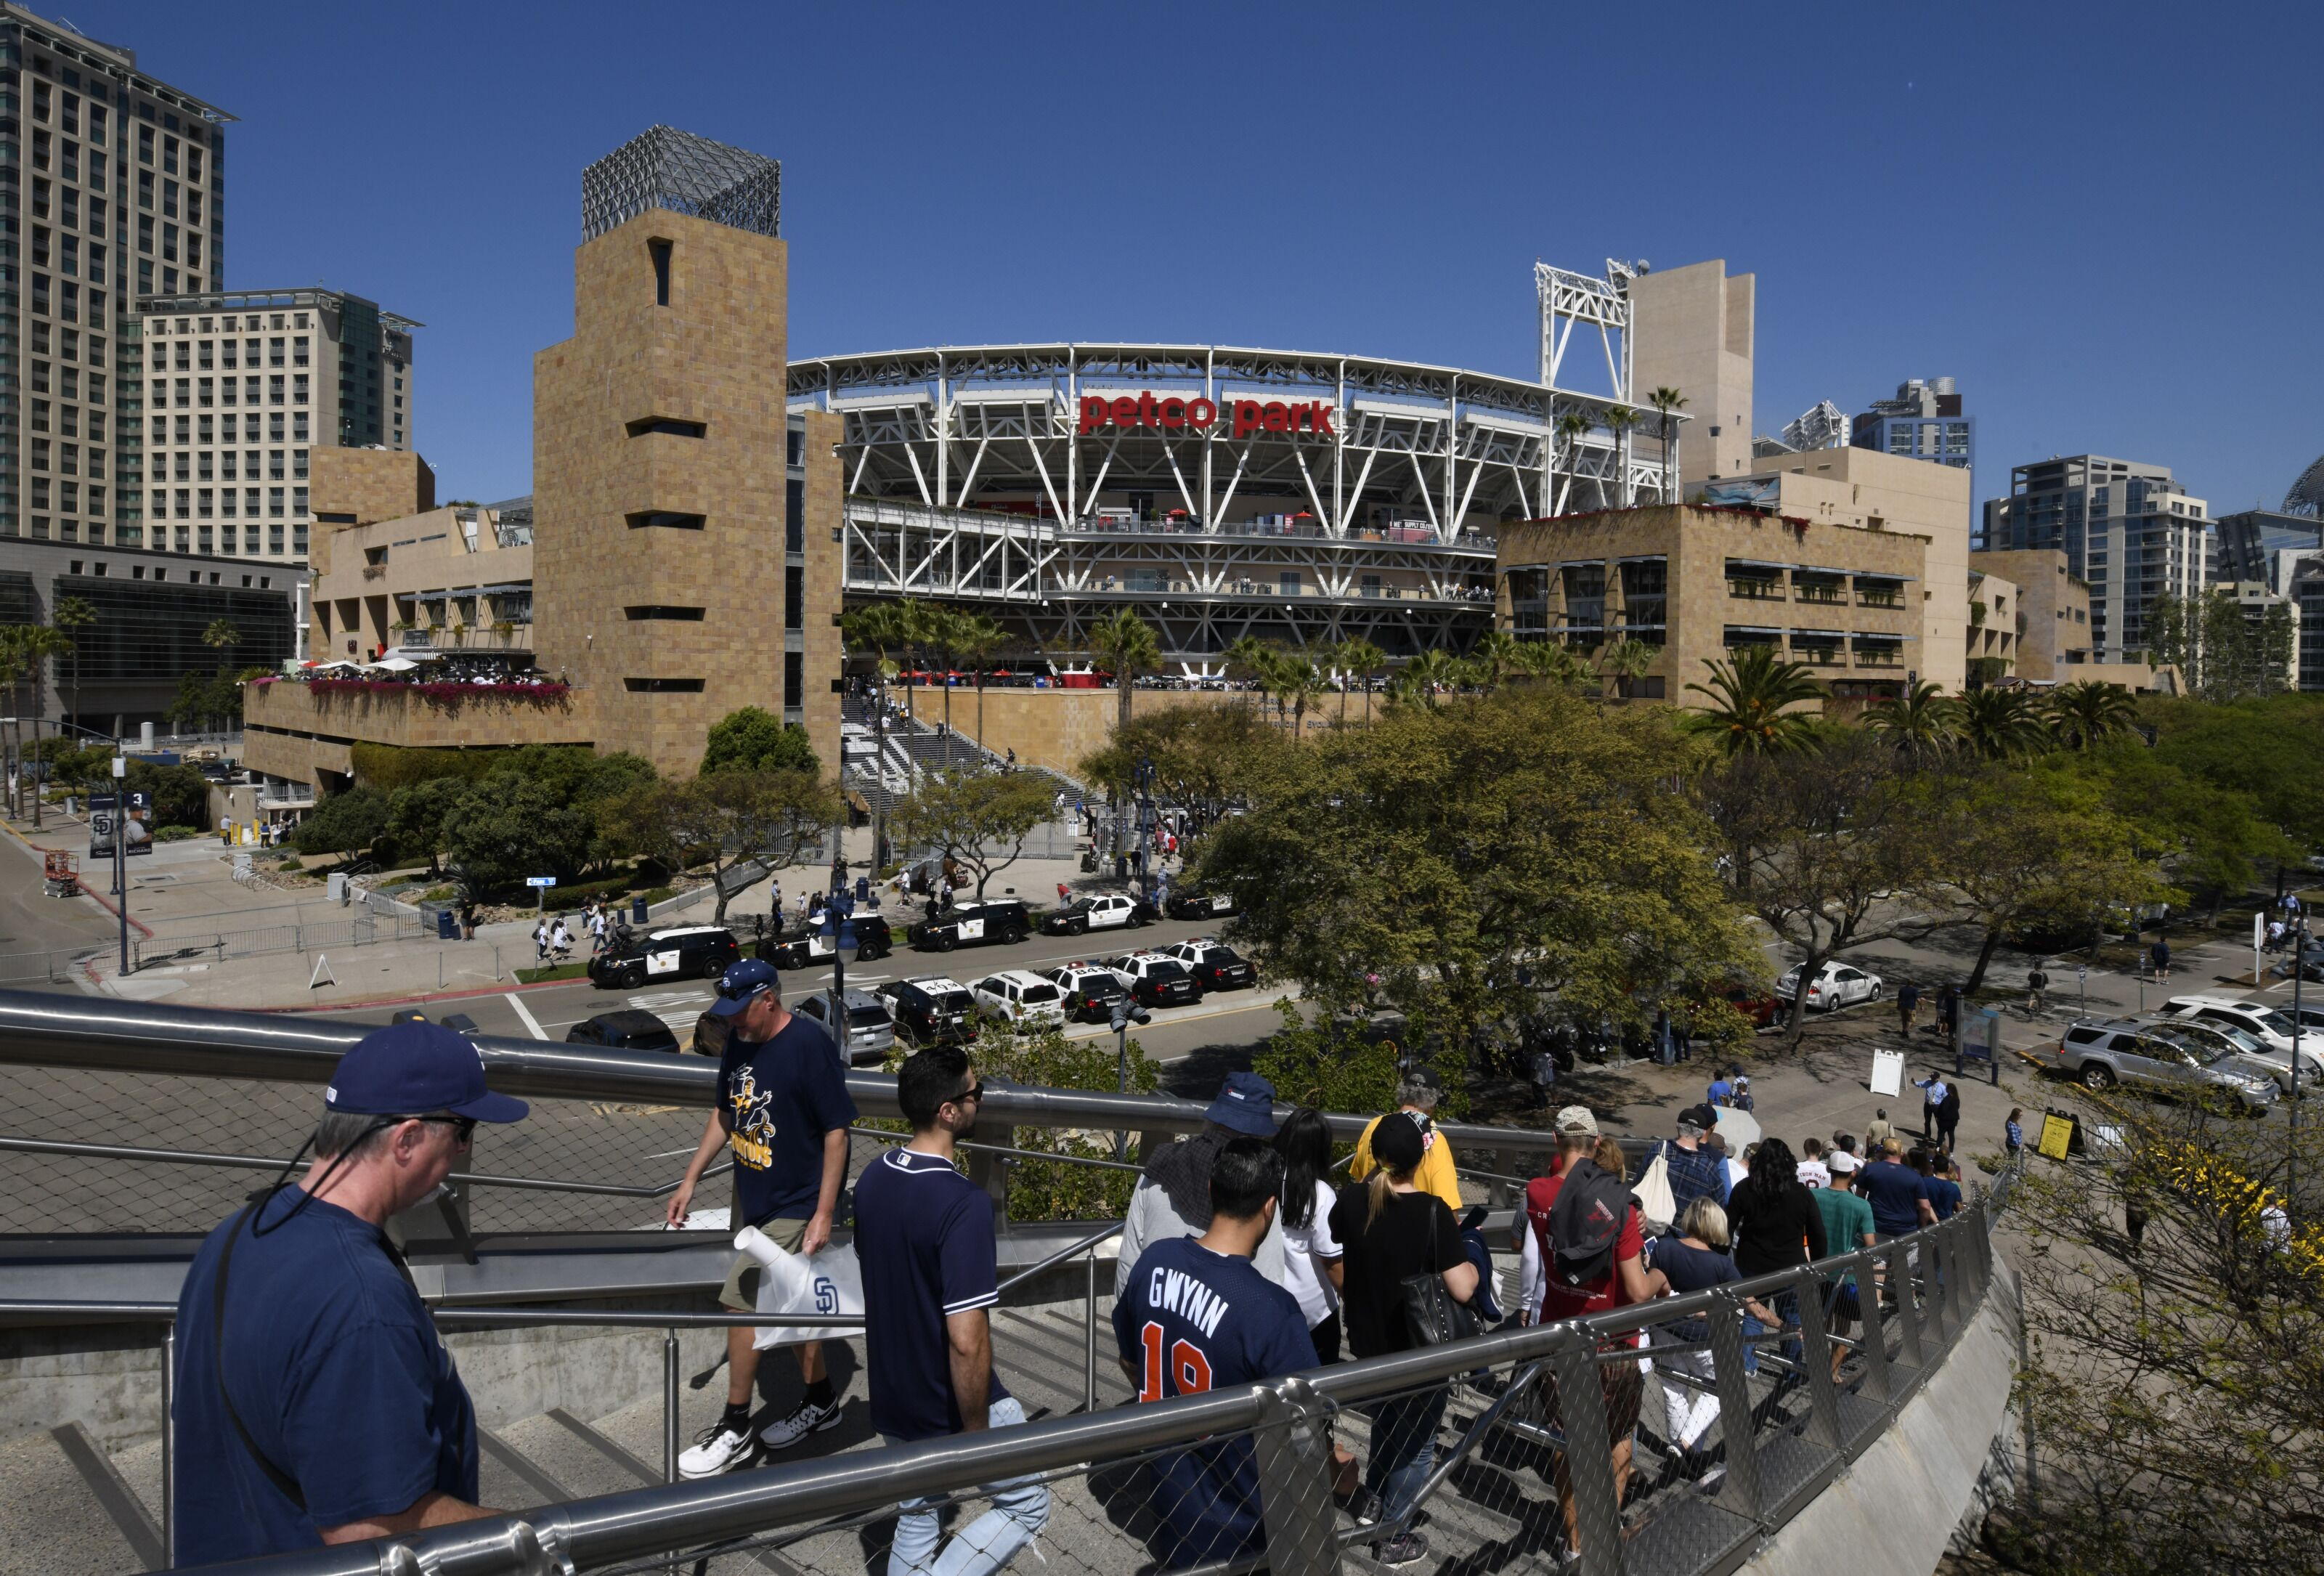 939861392-milwaukee-brewers-v-san-diego-padres.jpg